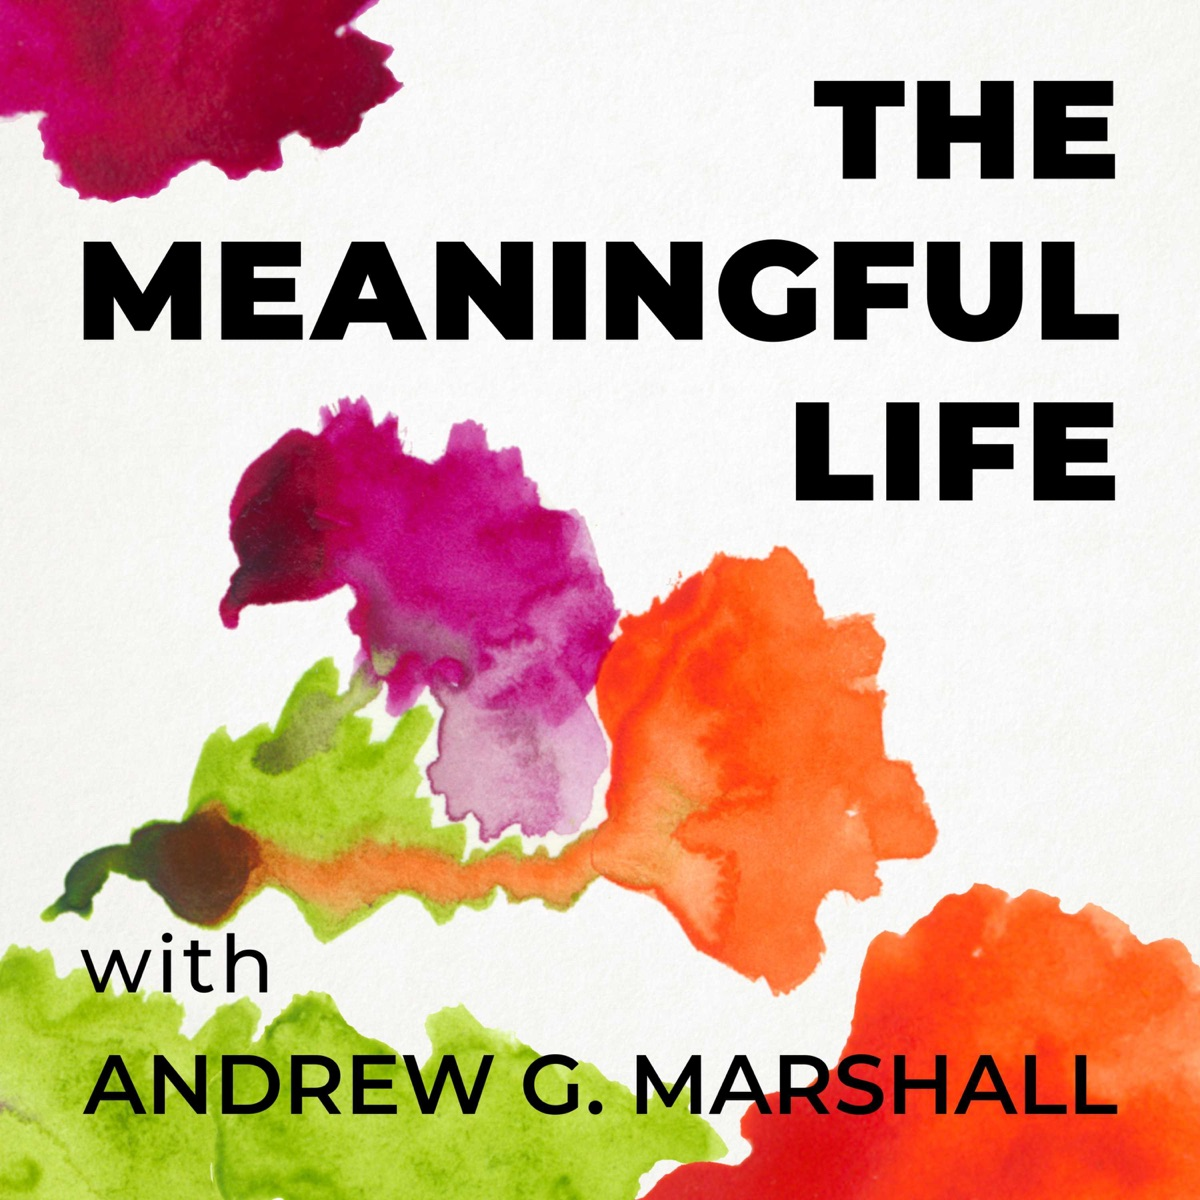 The Meaningful Life with Andrew G. Marshall